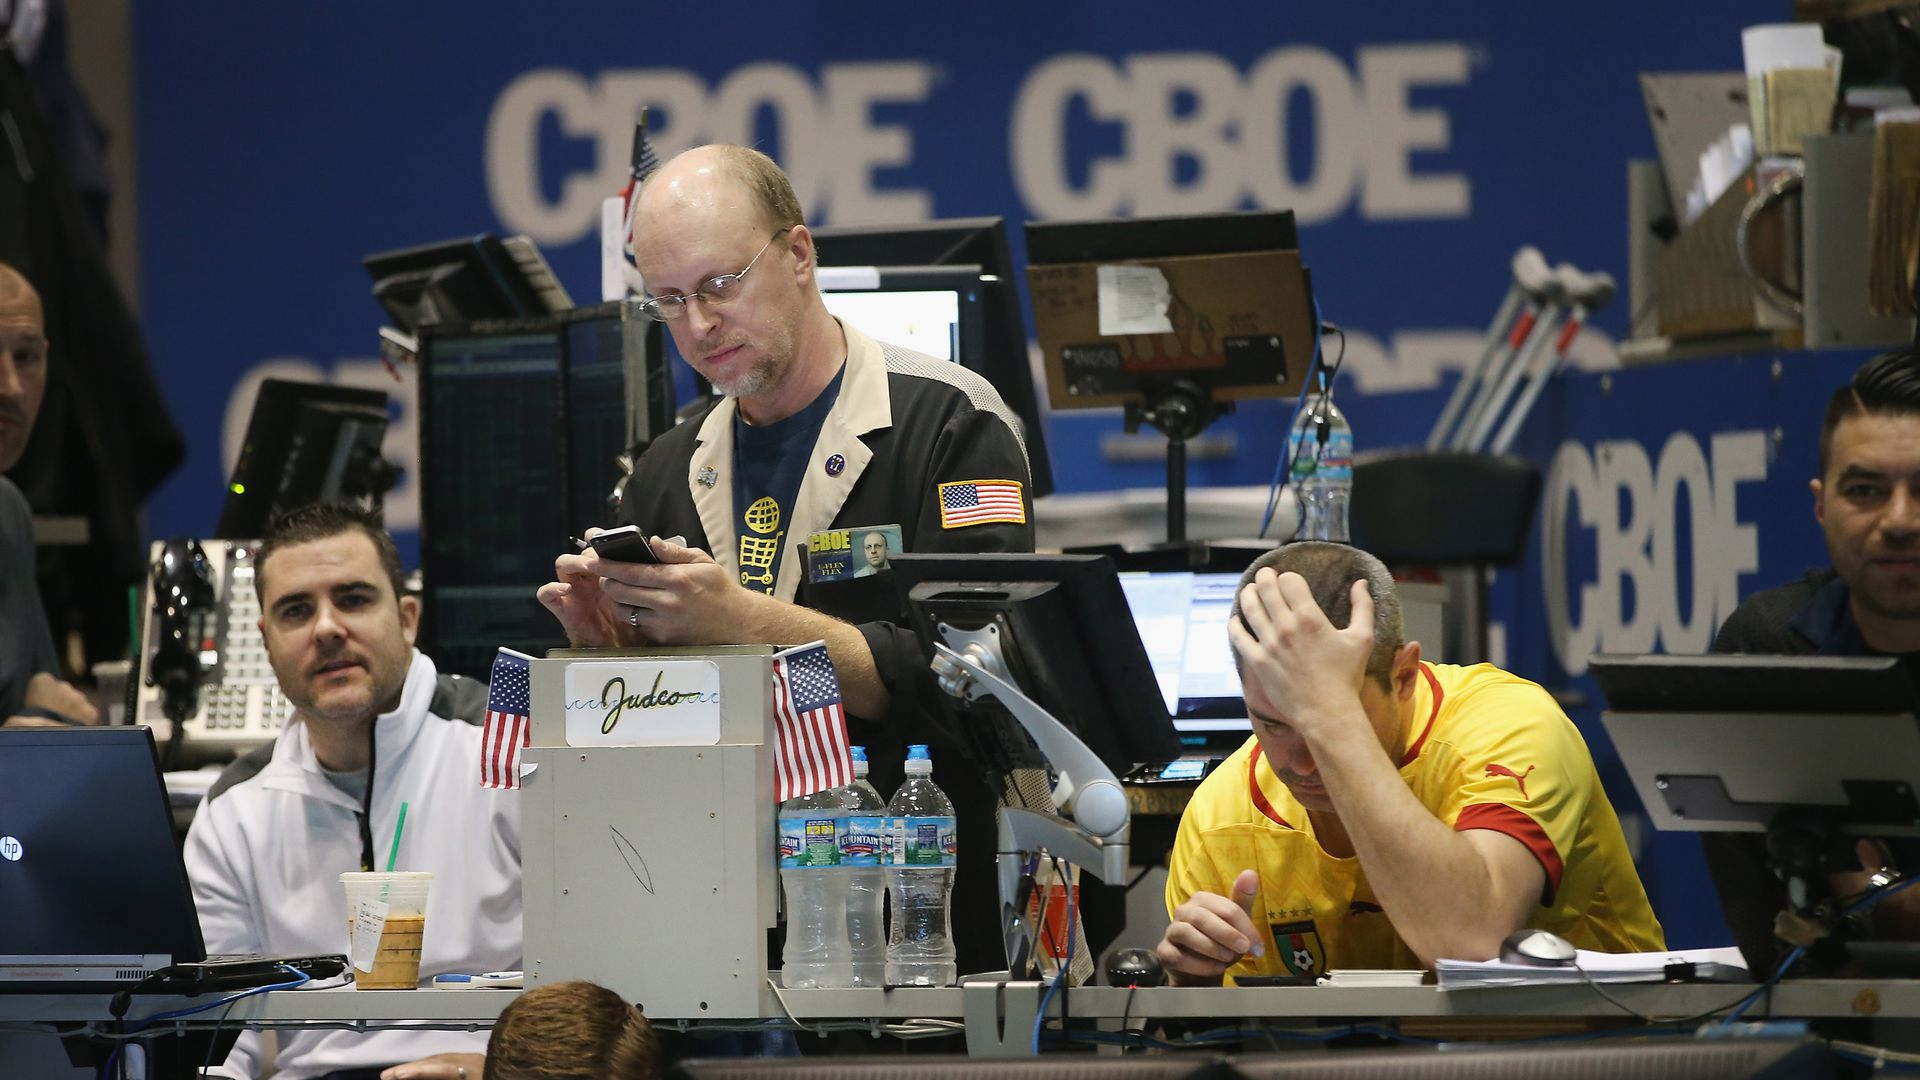 In this image, two men sit behind computers on a trading floor and one man stands between them, looking at his phone.